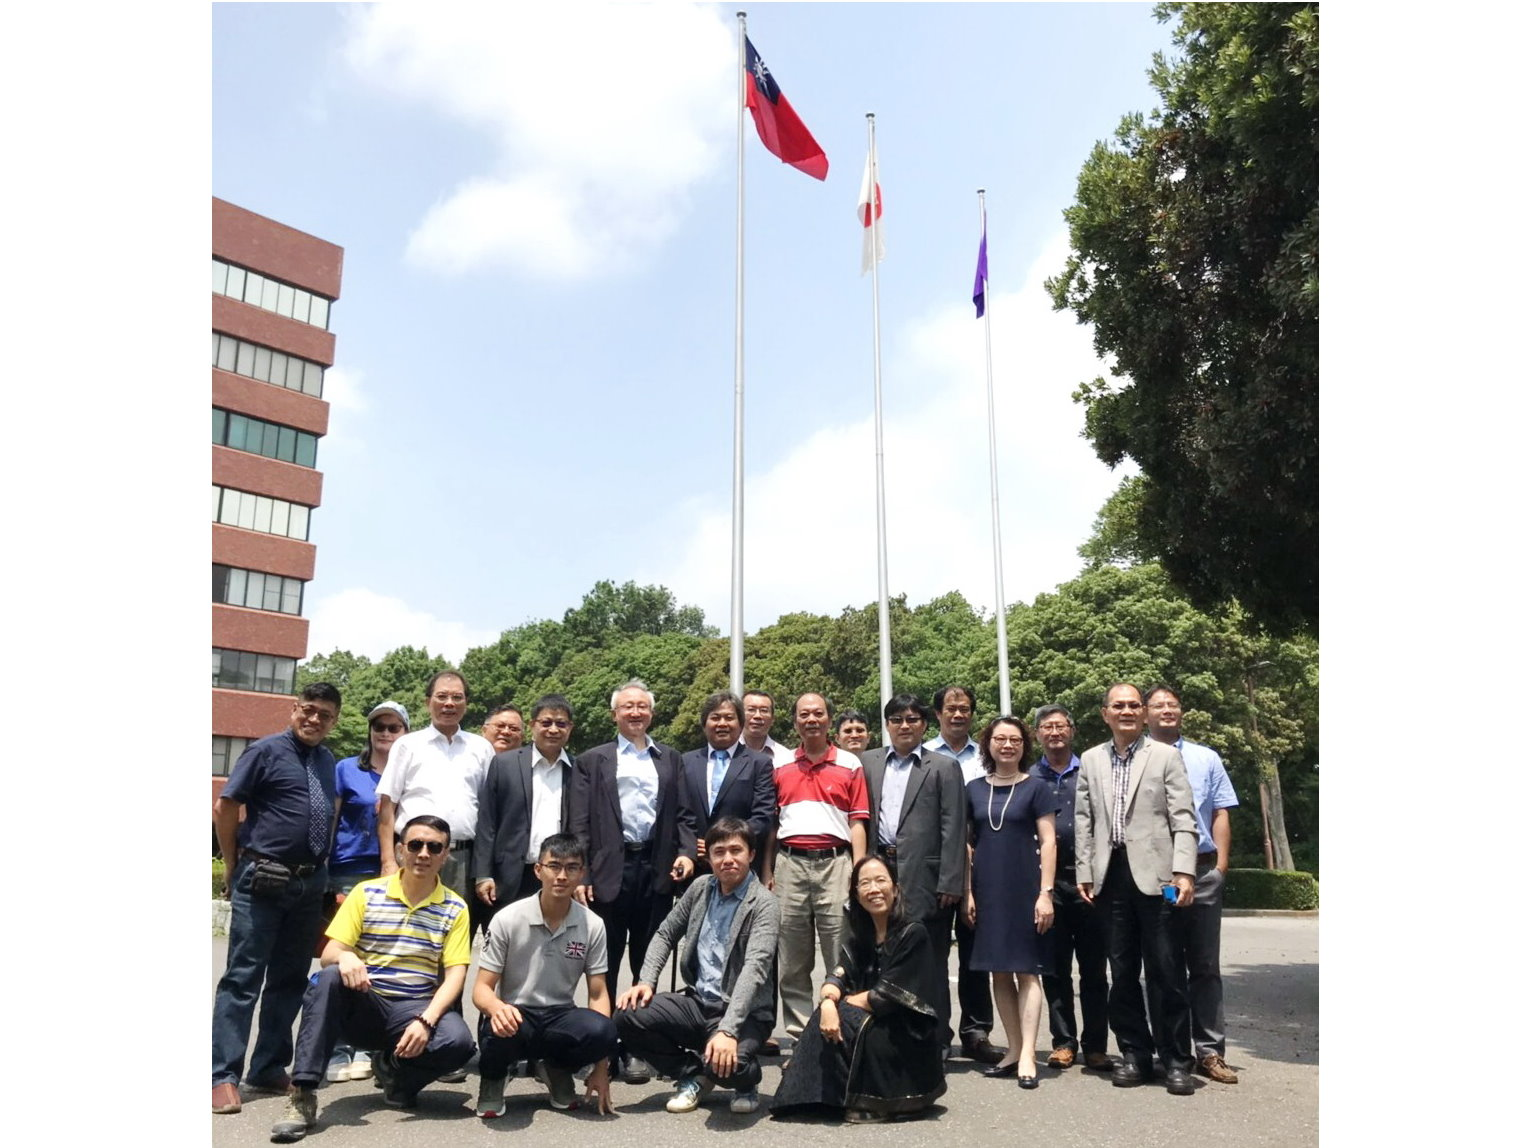 University of Tsukuba raised the national flag of the Republic of China to welcome the NCYU delegation.